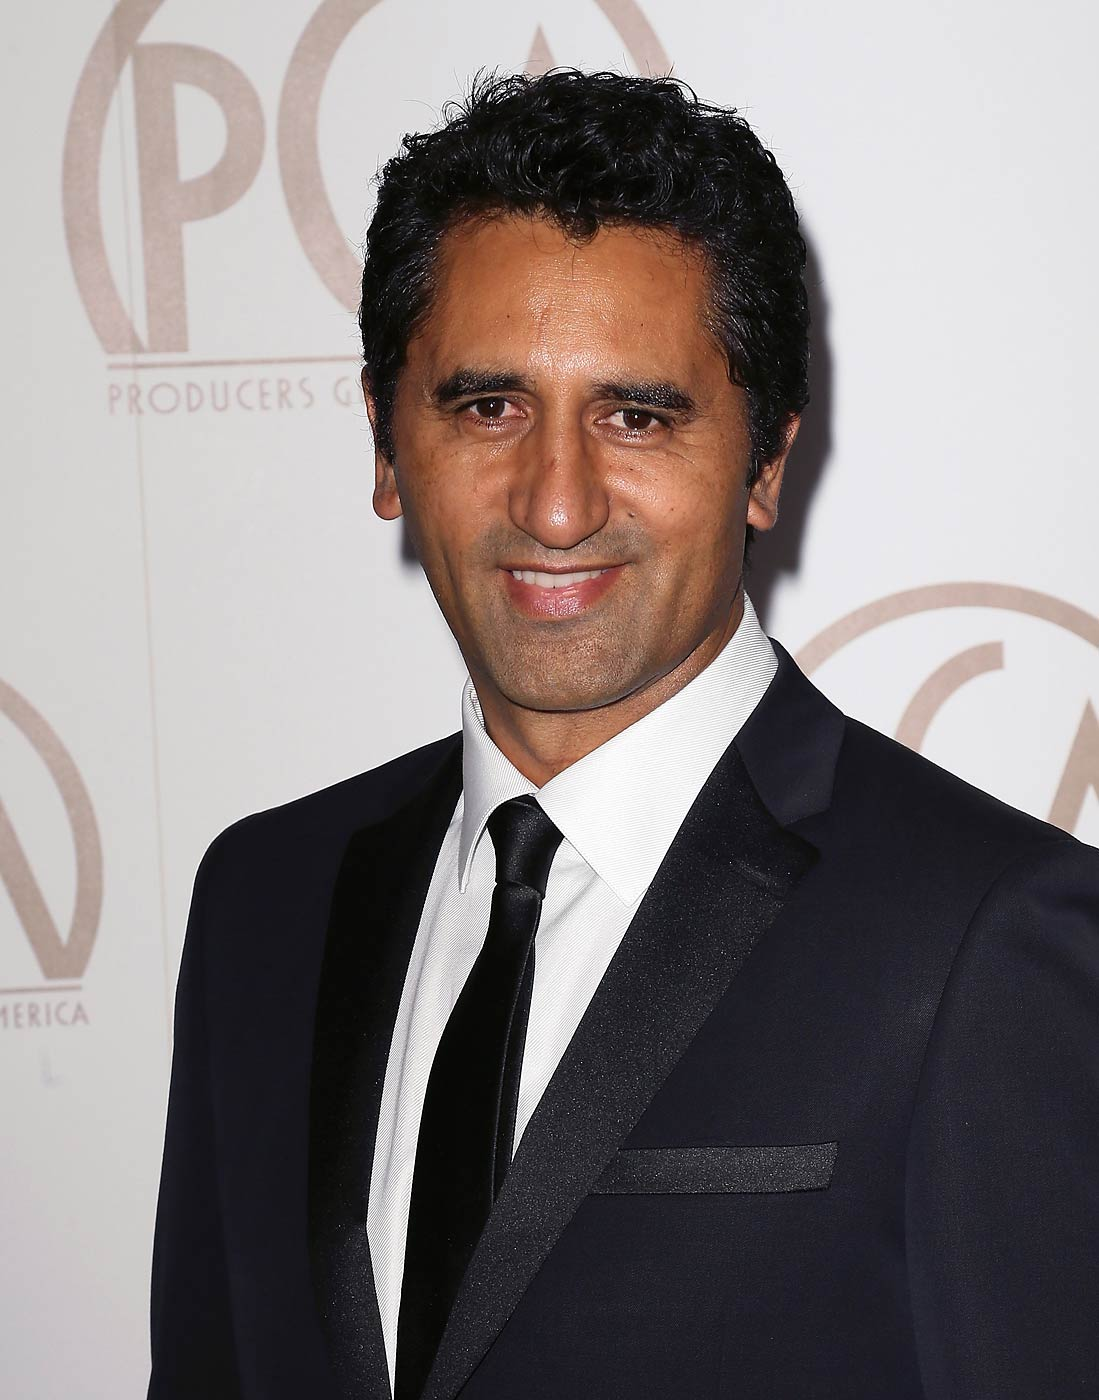 Cliff Curtis attends the 26th Annual Producers Guild of America Awards at the Hyatt Regency Century Plaza on Jan. 24, 2015 in Los Angeles, Calif.